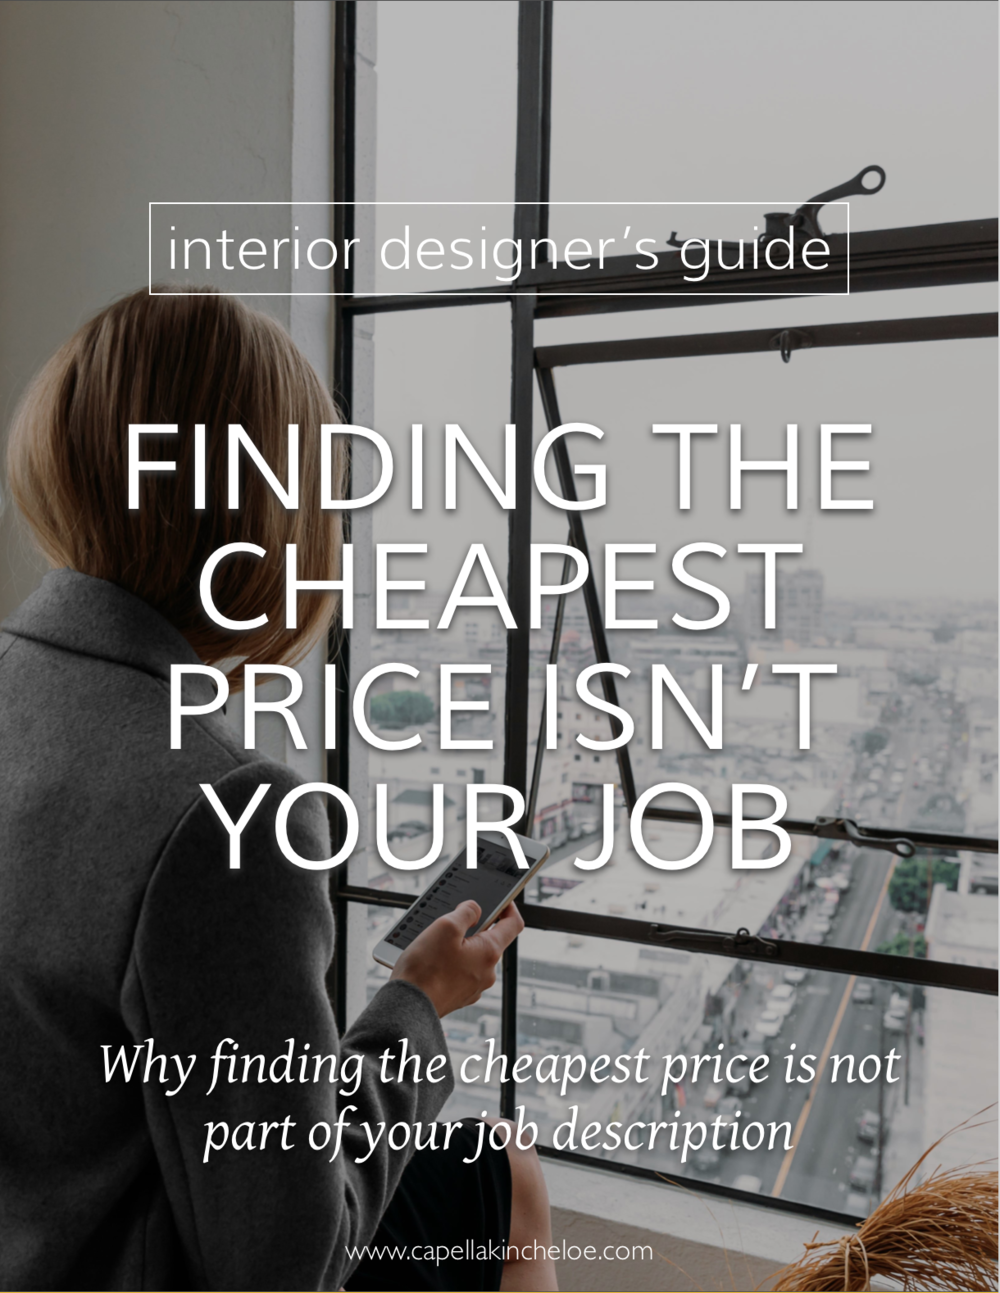 Clients Want You To Find Them The Cheapest Price On Item? U0026nbsp;Learn Why